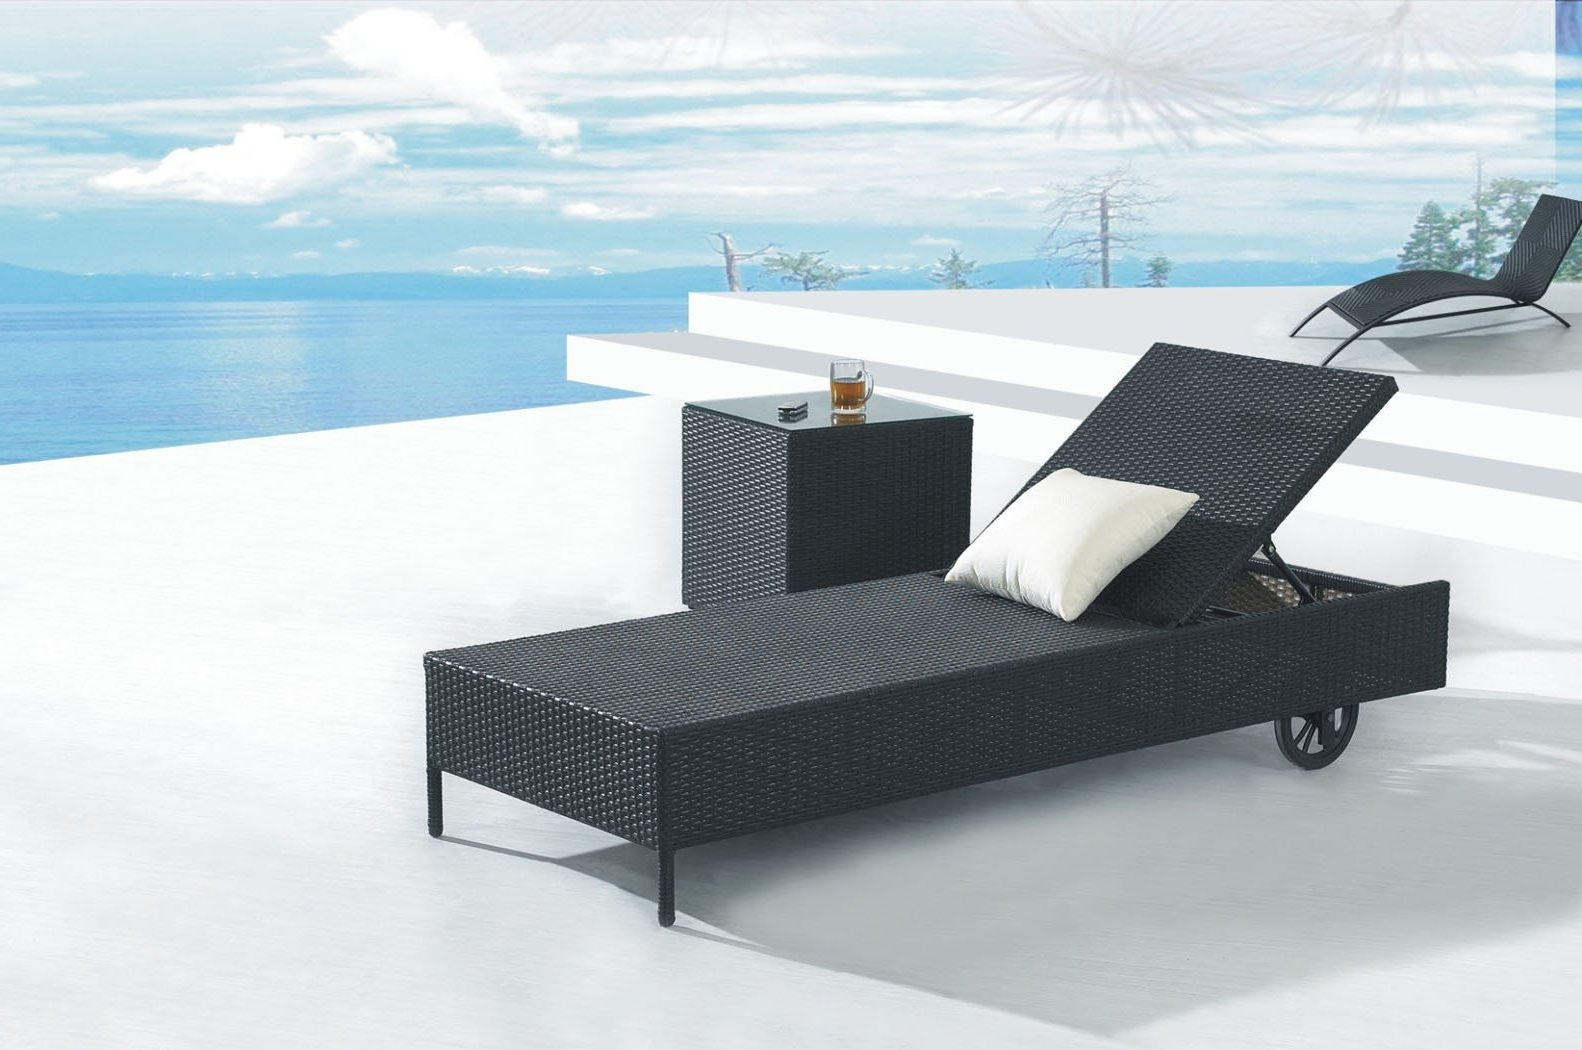 Most Popular Black Chaise Lounge Outdoor Chairs Pertaining To Decorating Pool Chaise Lounge Chairs — Bed And Shower (View 10 of 15)